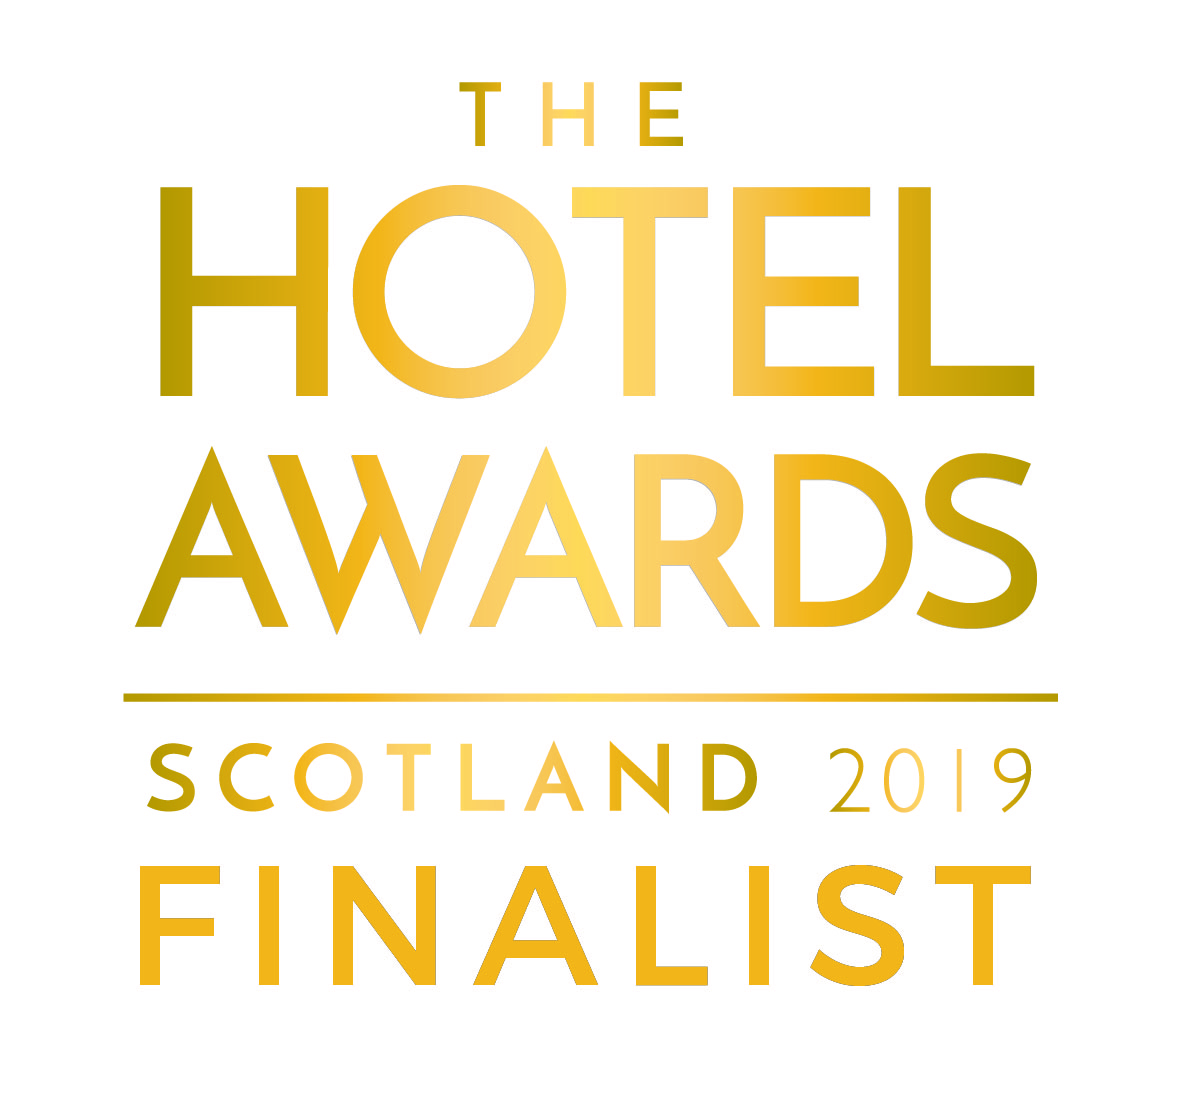 Hotel Awards Scotland